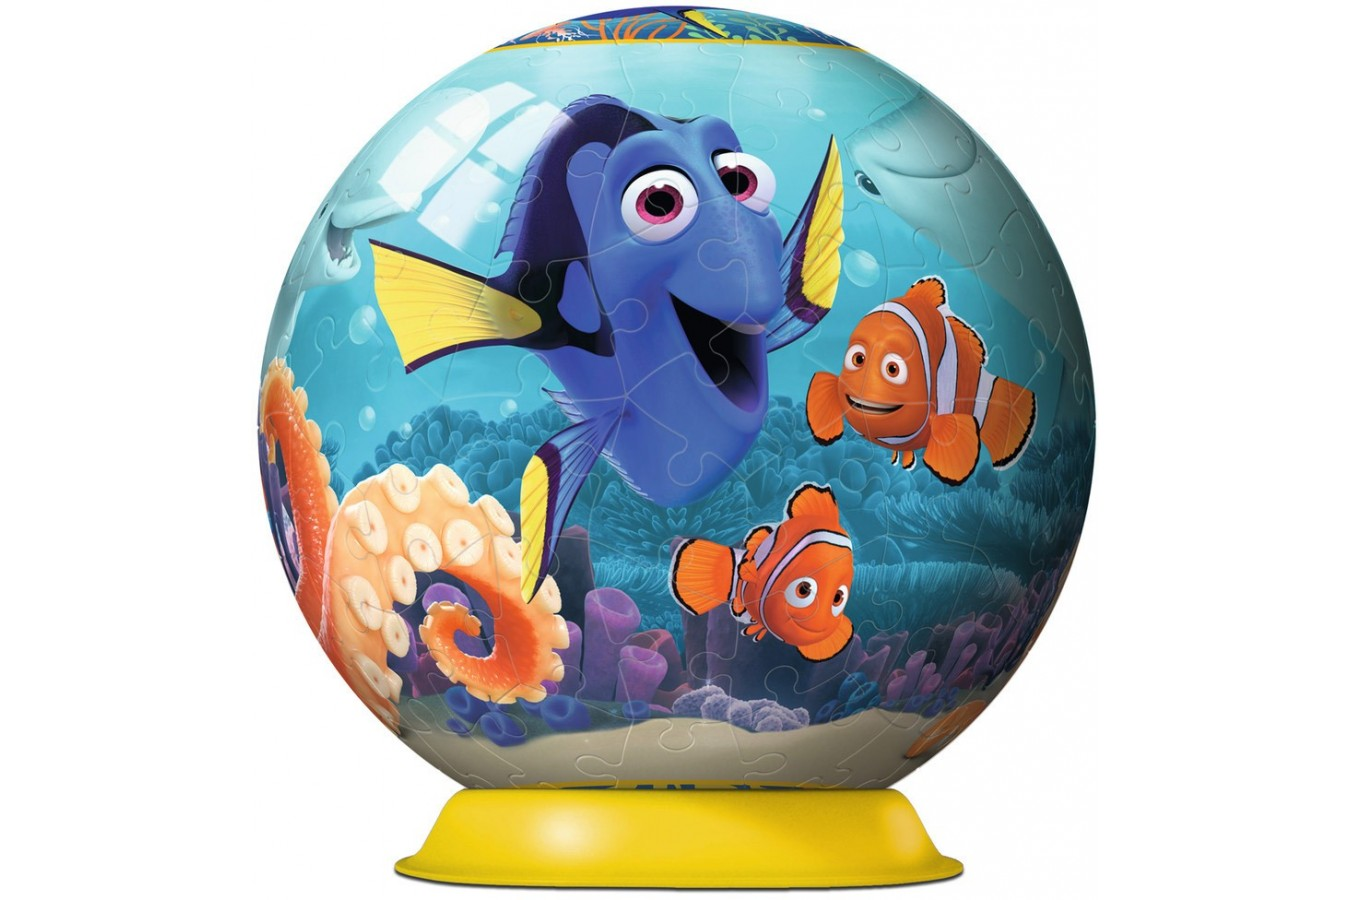 Puzzle glob Ravensburger - In Cautarea Lui Dory, 108 piese (12264)